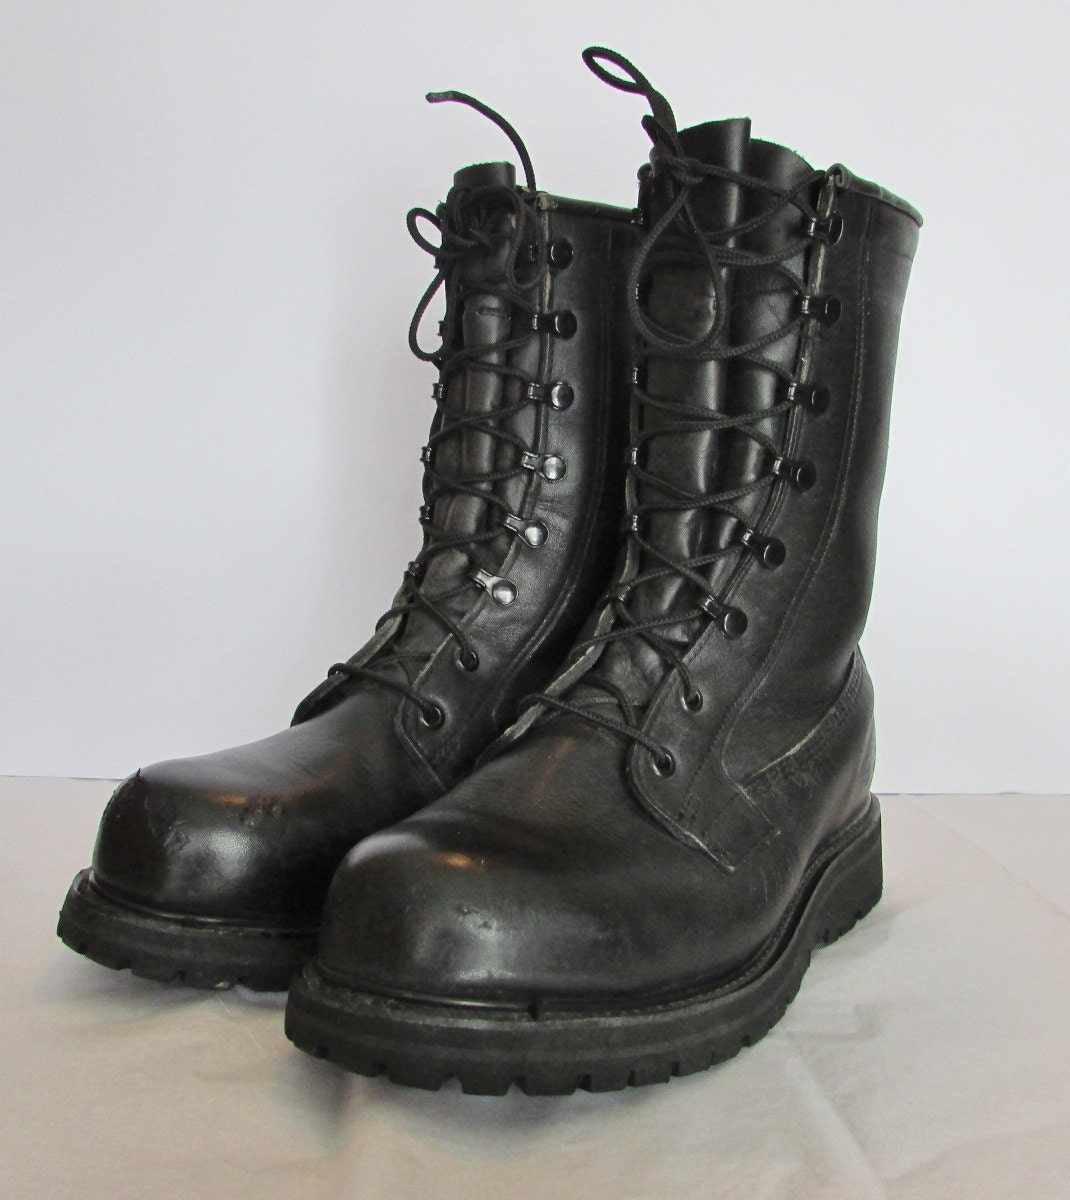 Wonderful Prada Calzature Donna Women Leather Black Combat Boot Boots